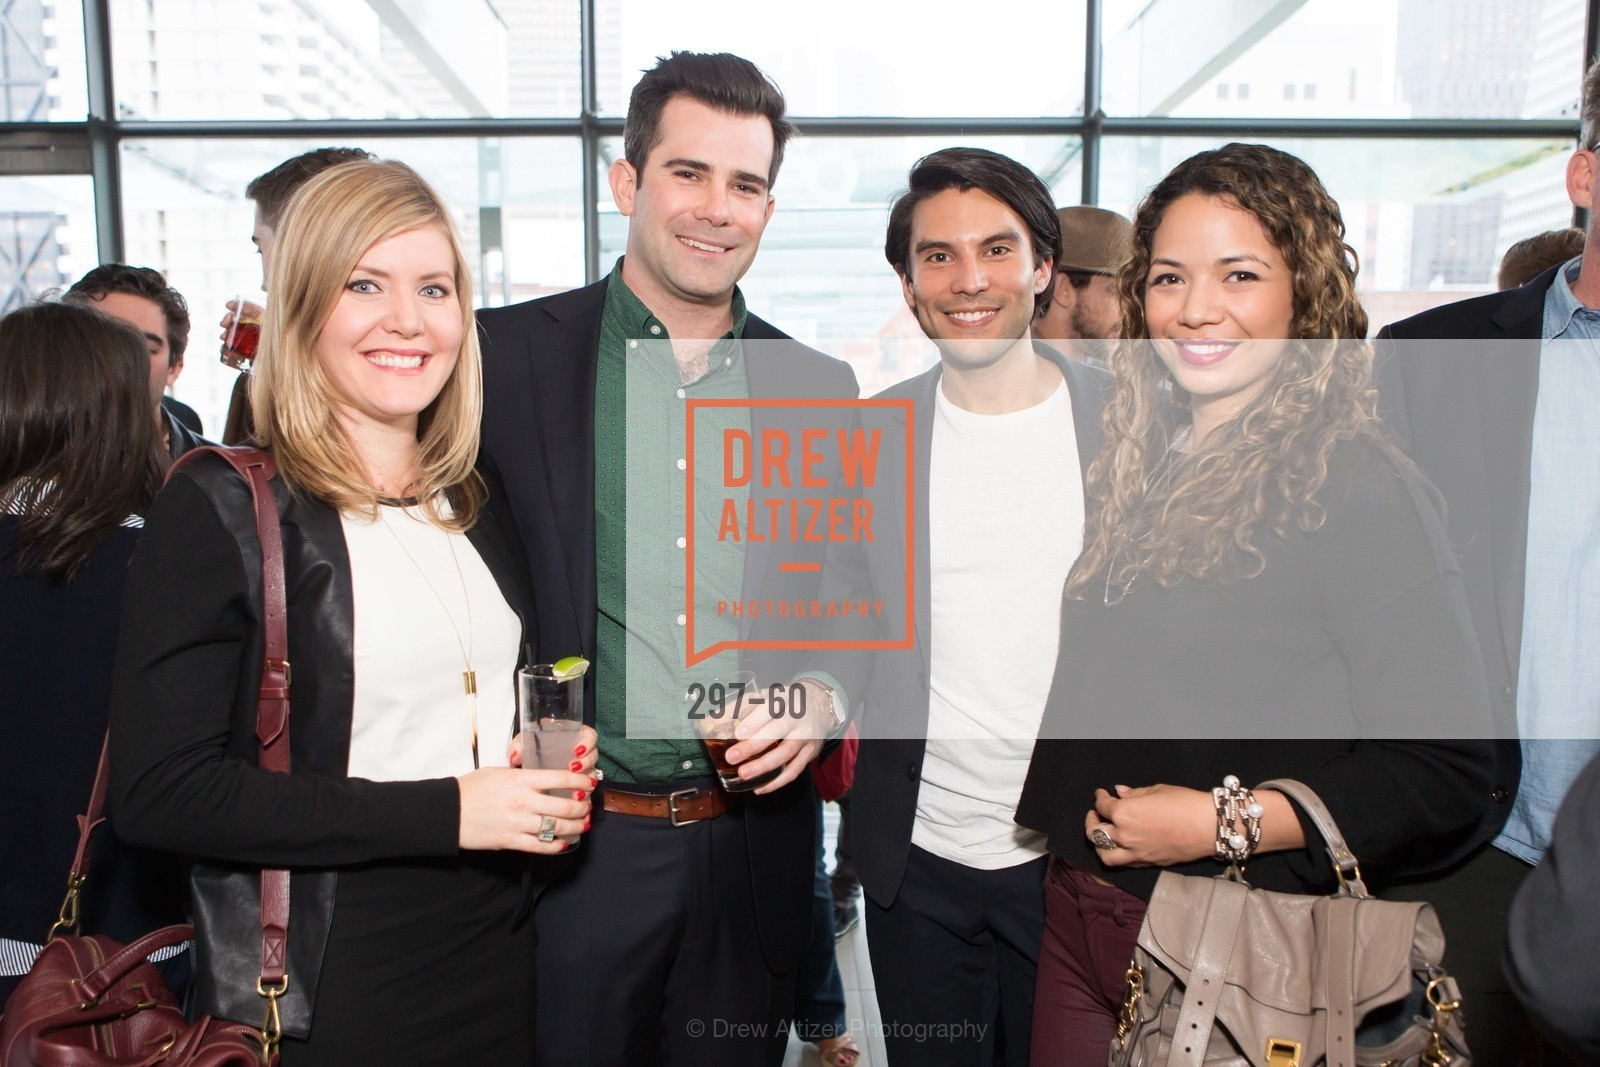 Anne Kelly, Tony Gunterman, Carlos Rivera-Anaya, Angela Sobrepena, MR PORTER Celebrate The San Francisco Issue of The Journal, The Battery Rooftop - The Battery SF, April 23rd, 2015,Drew Altizer, Drew Altizer Photography, full-service agency, private events, San Francisco photographer, photographer california